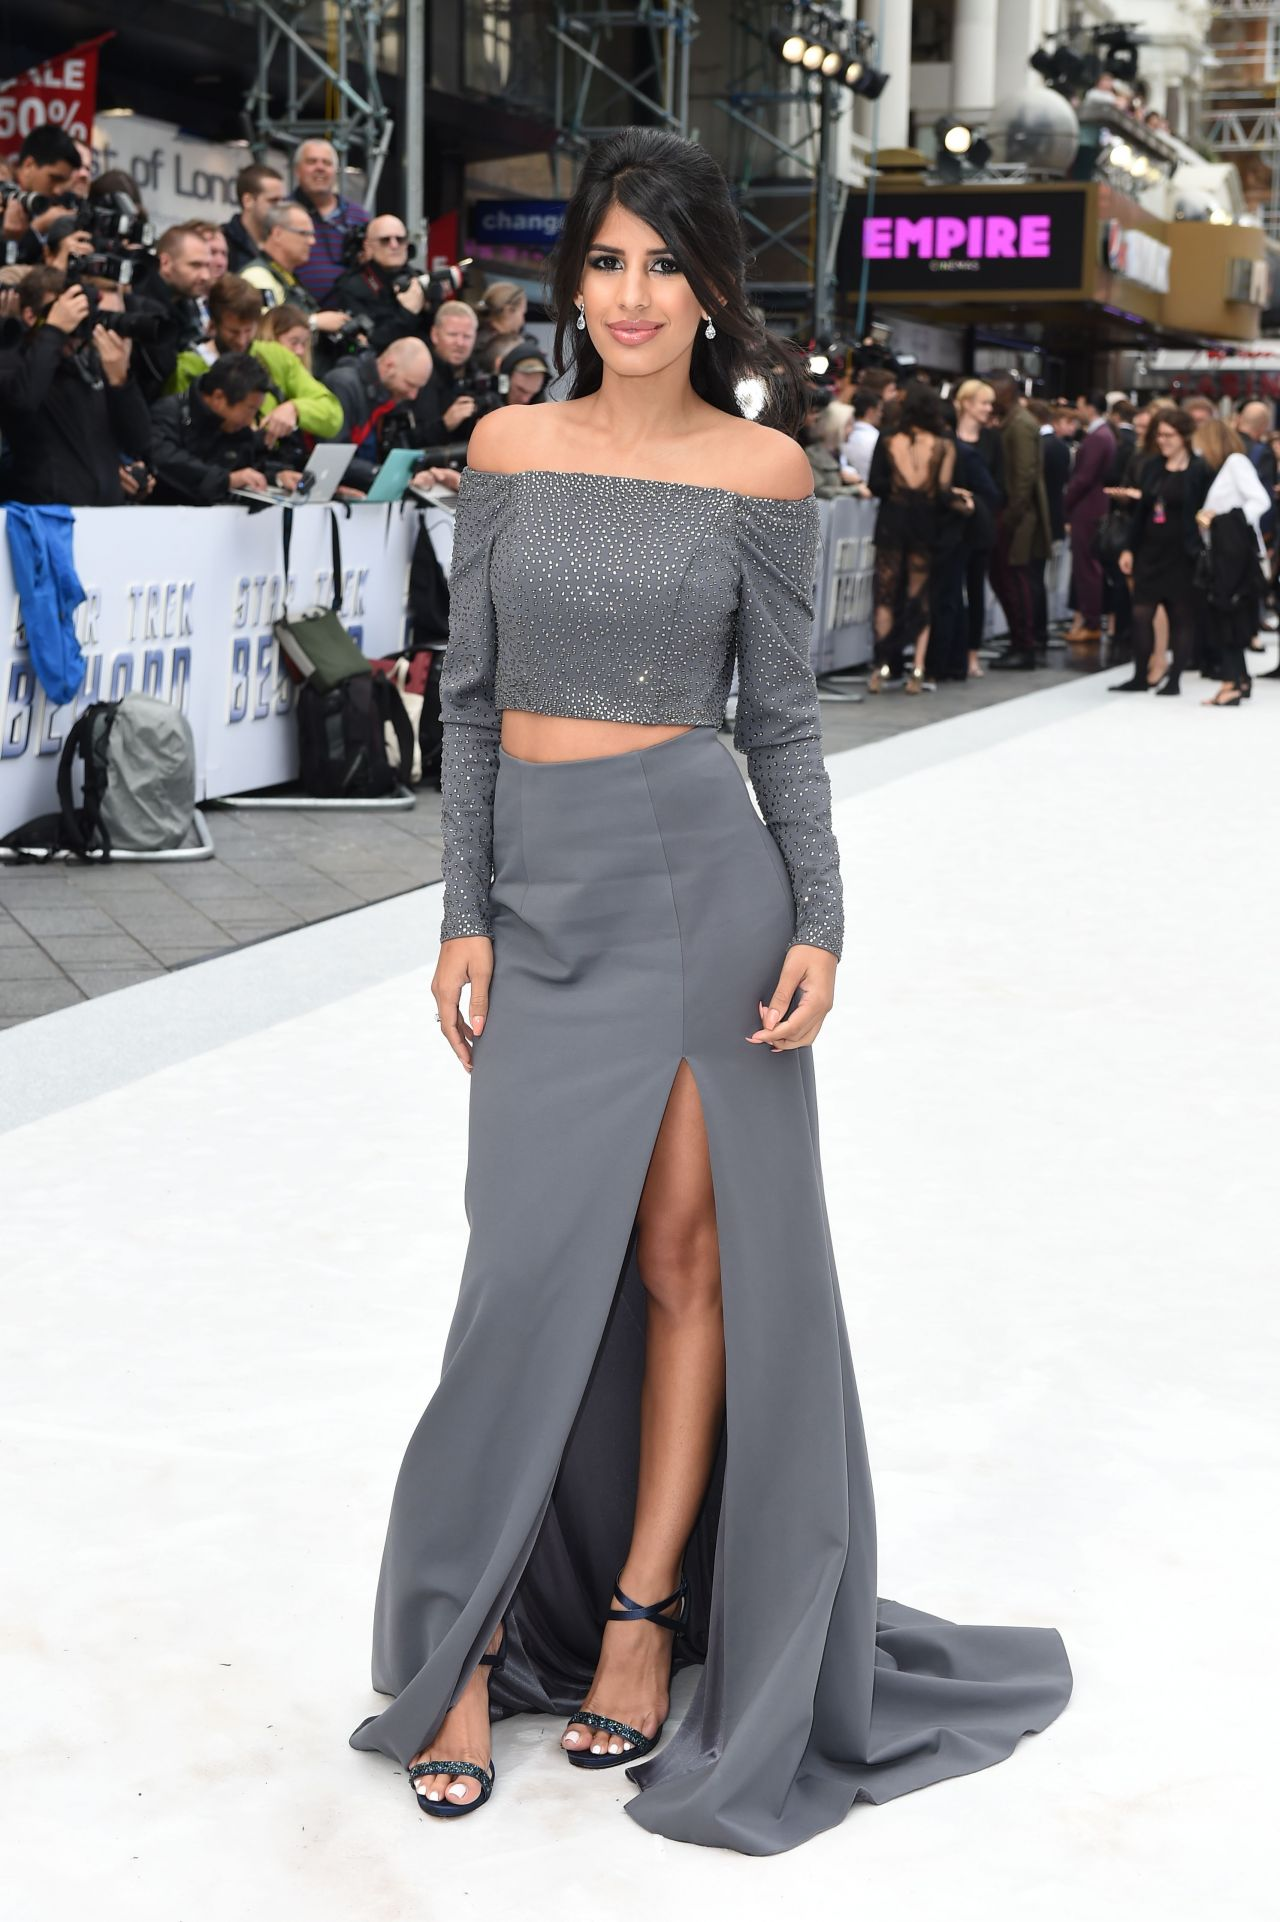 SEE PICS: Star Trek's London premiere